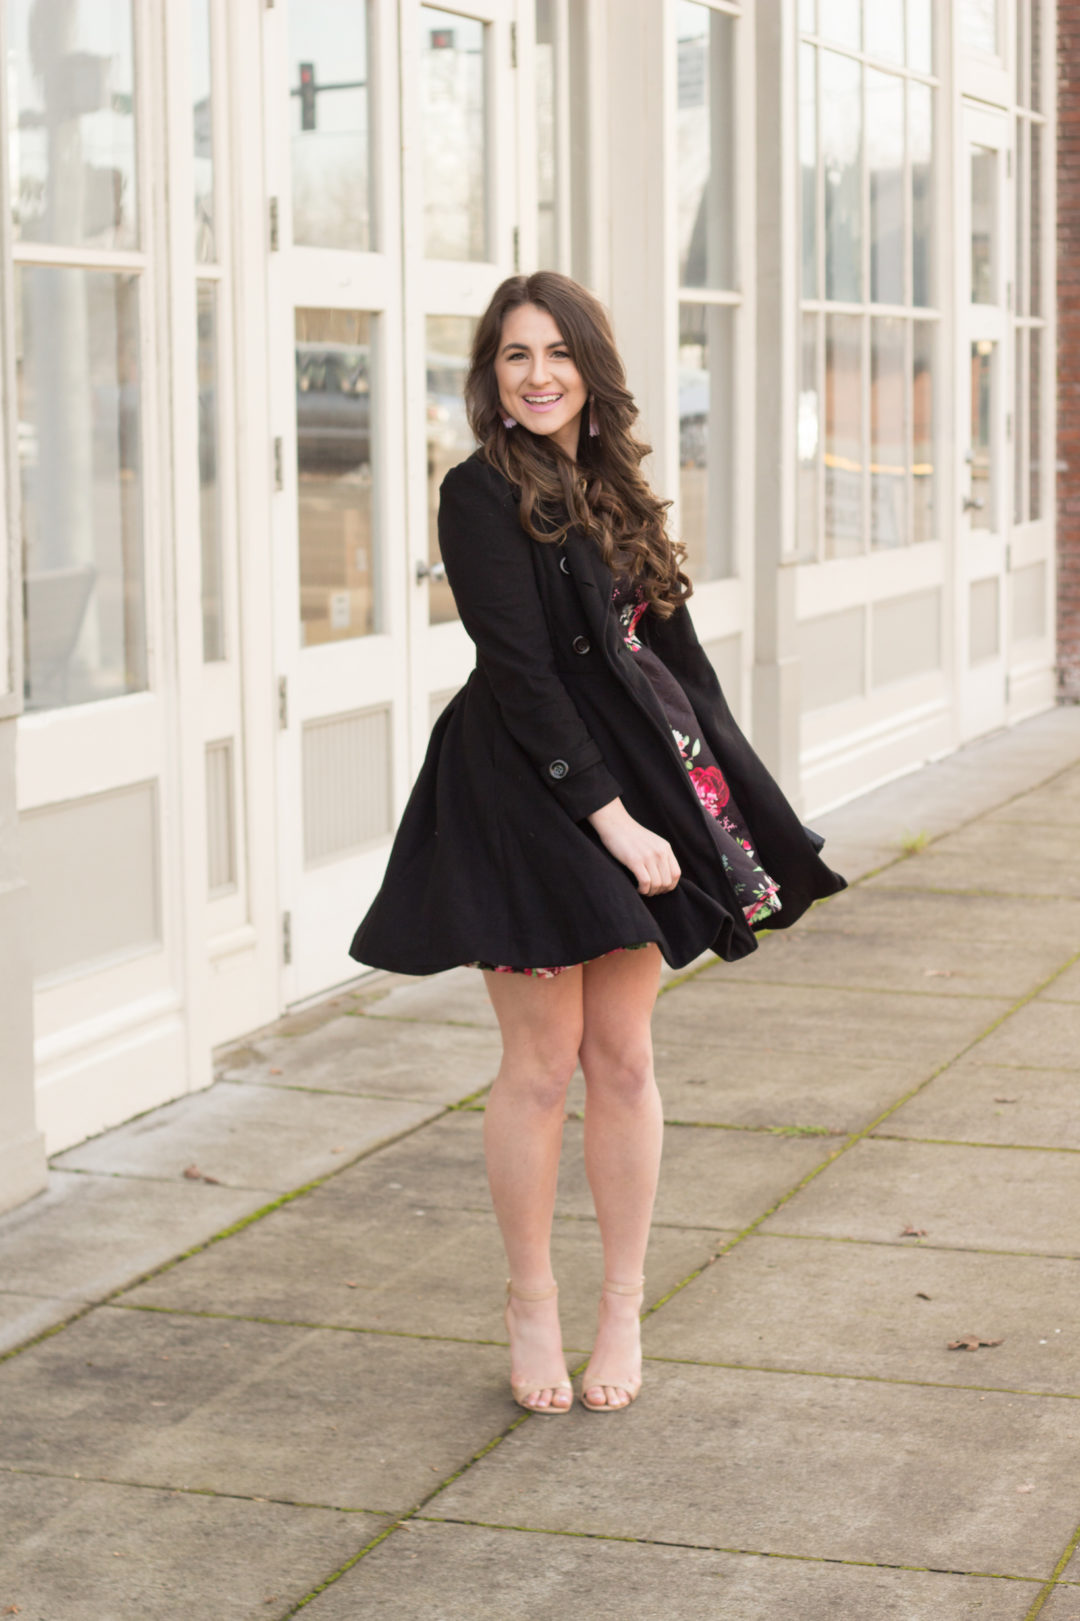 Twirling this Winter in a black skirted pea coat, floral dress, and glittery tassel earrings.